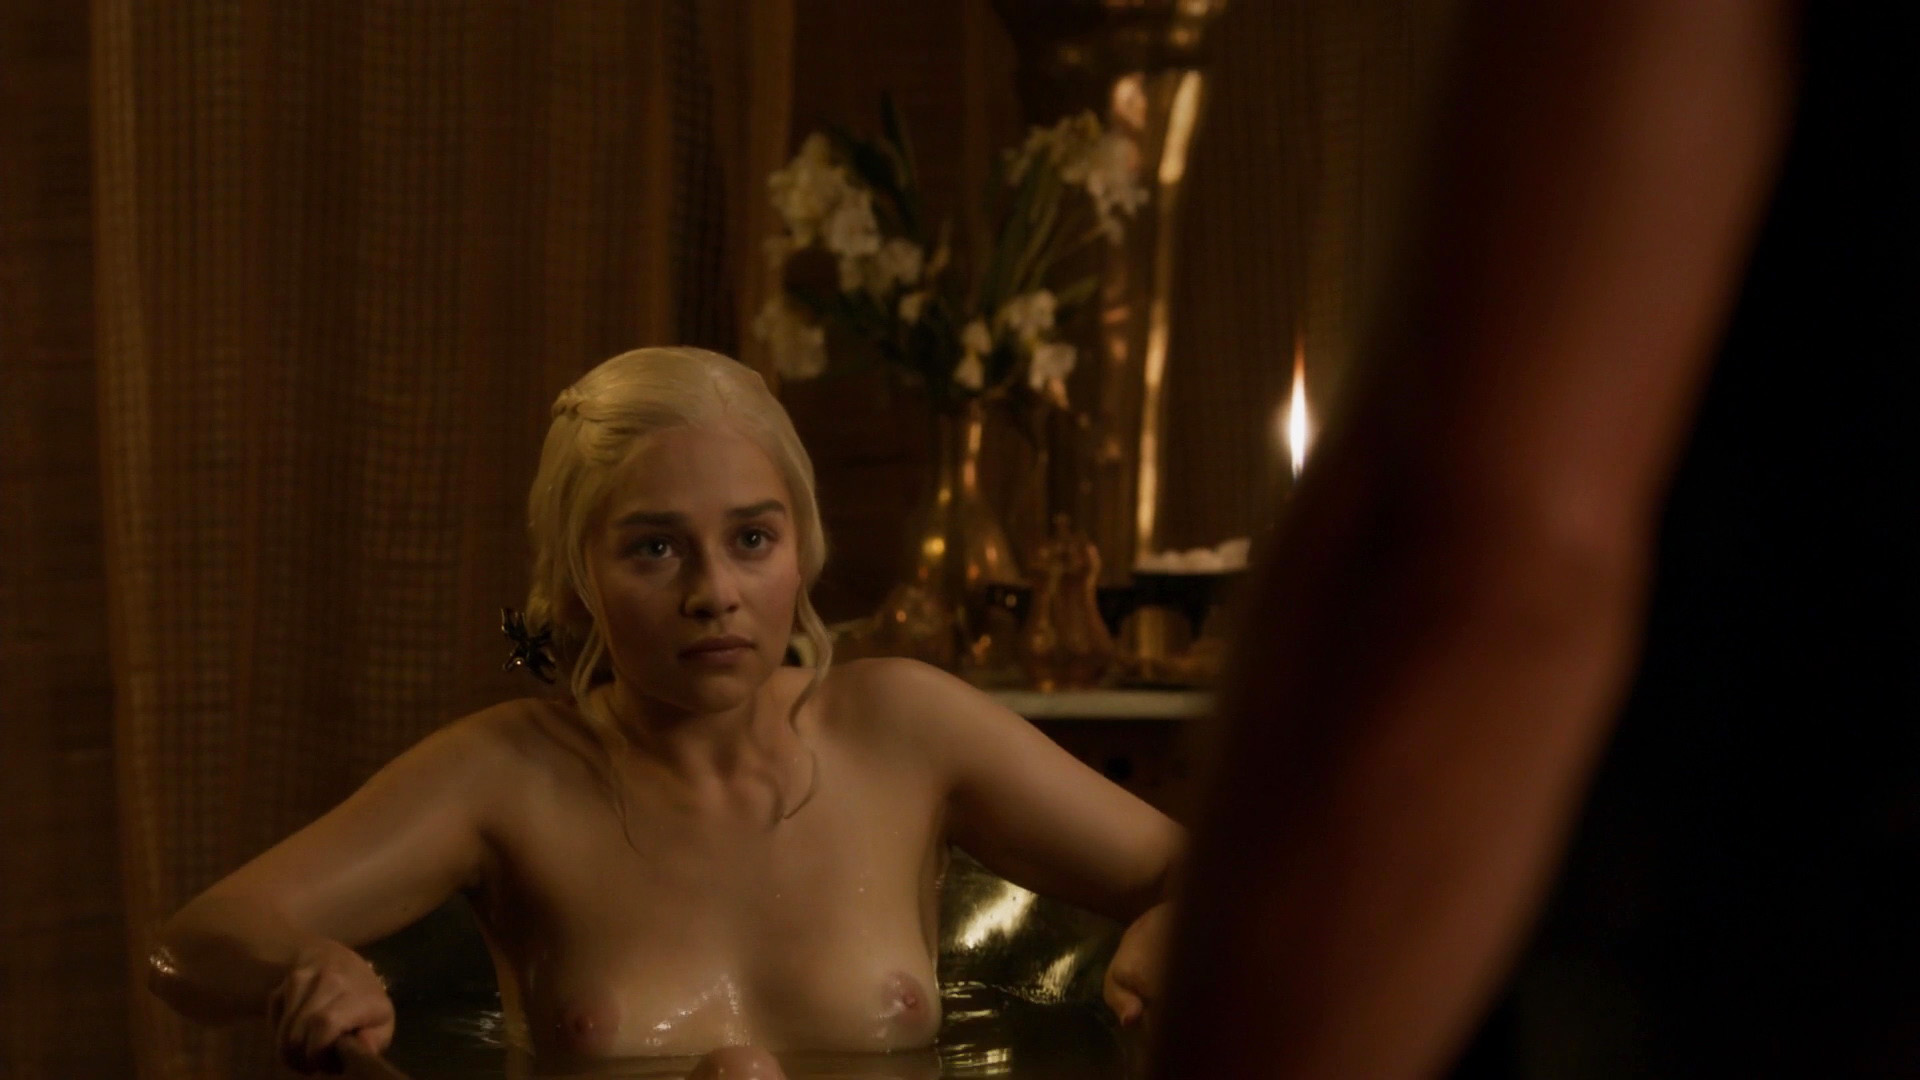 Share Game of thrones emilia clarke sex opinion already